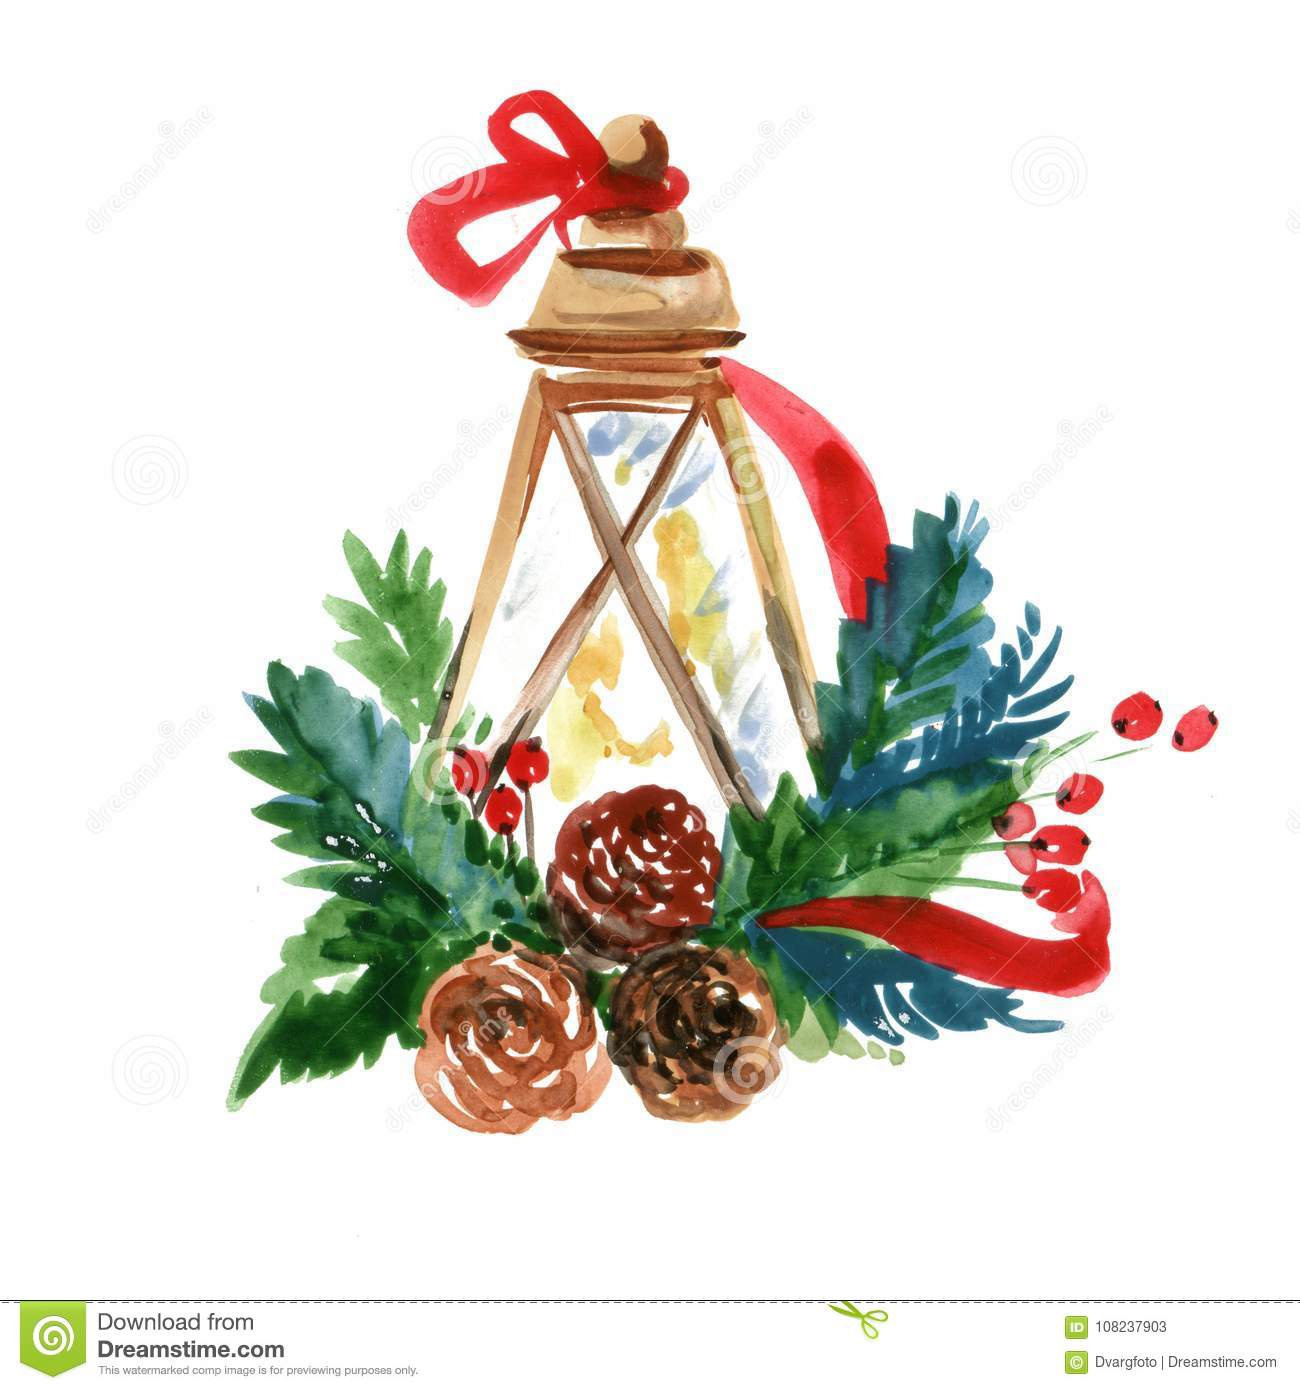 watercolor traditional christmas lantern with decor hand drawn illustration on white background